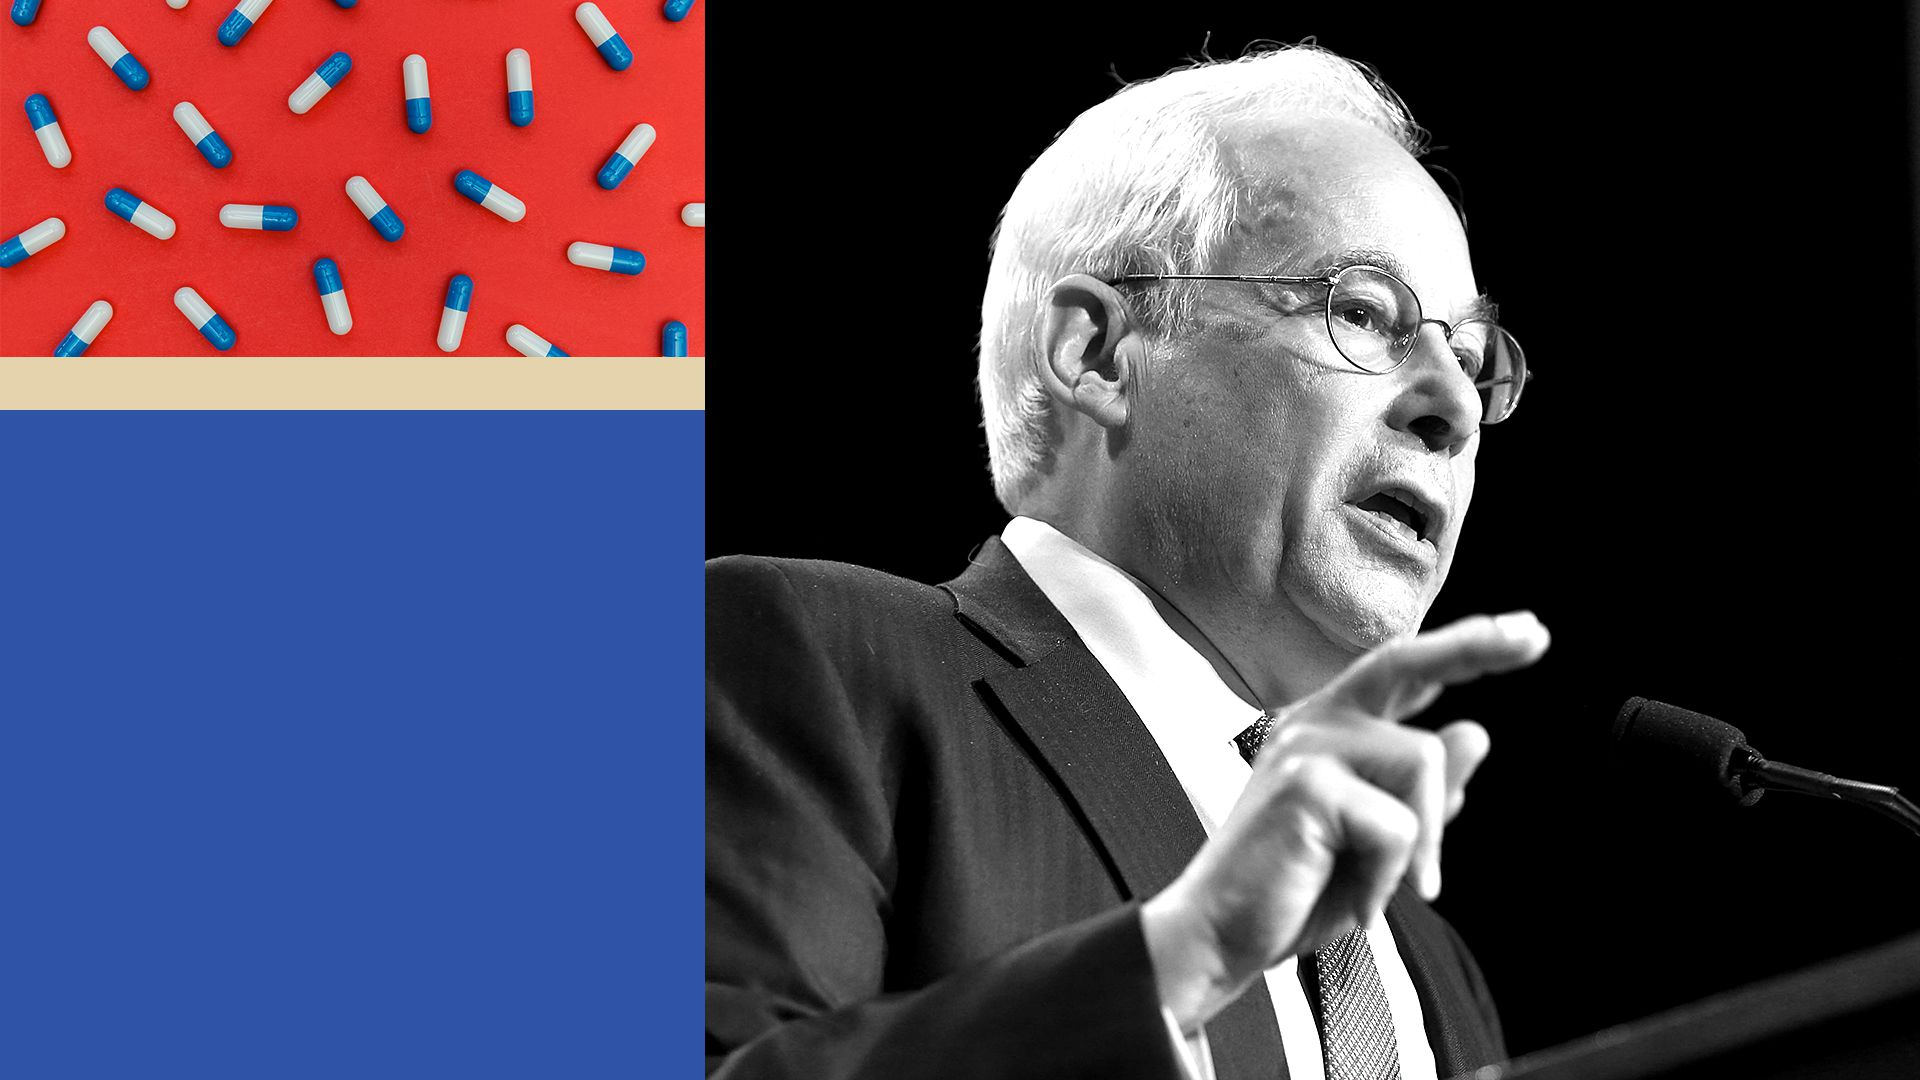 An illustration showing Don Berwick speaking in one panel and prescription drug pills in another panel.